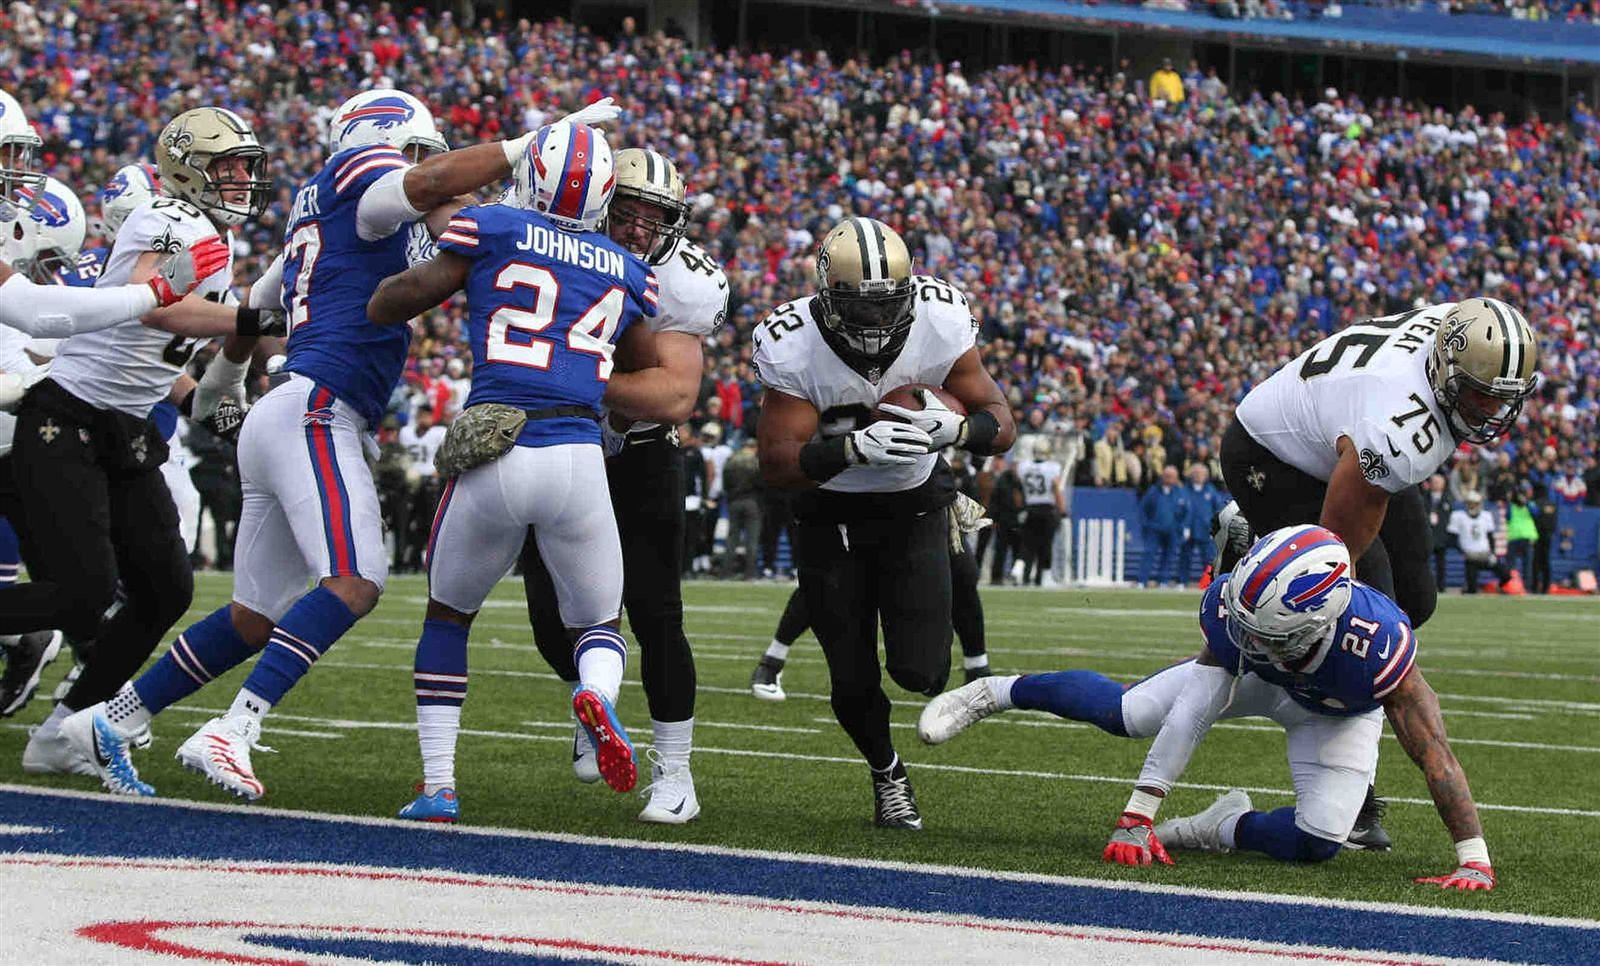 New Orleans Saints running back Mark Ingram (22) scores a touchdown in the second quarter.